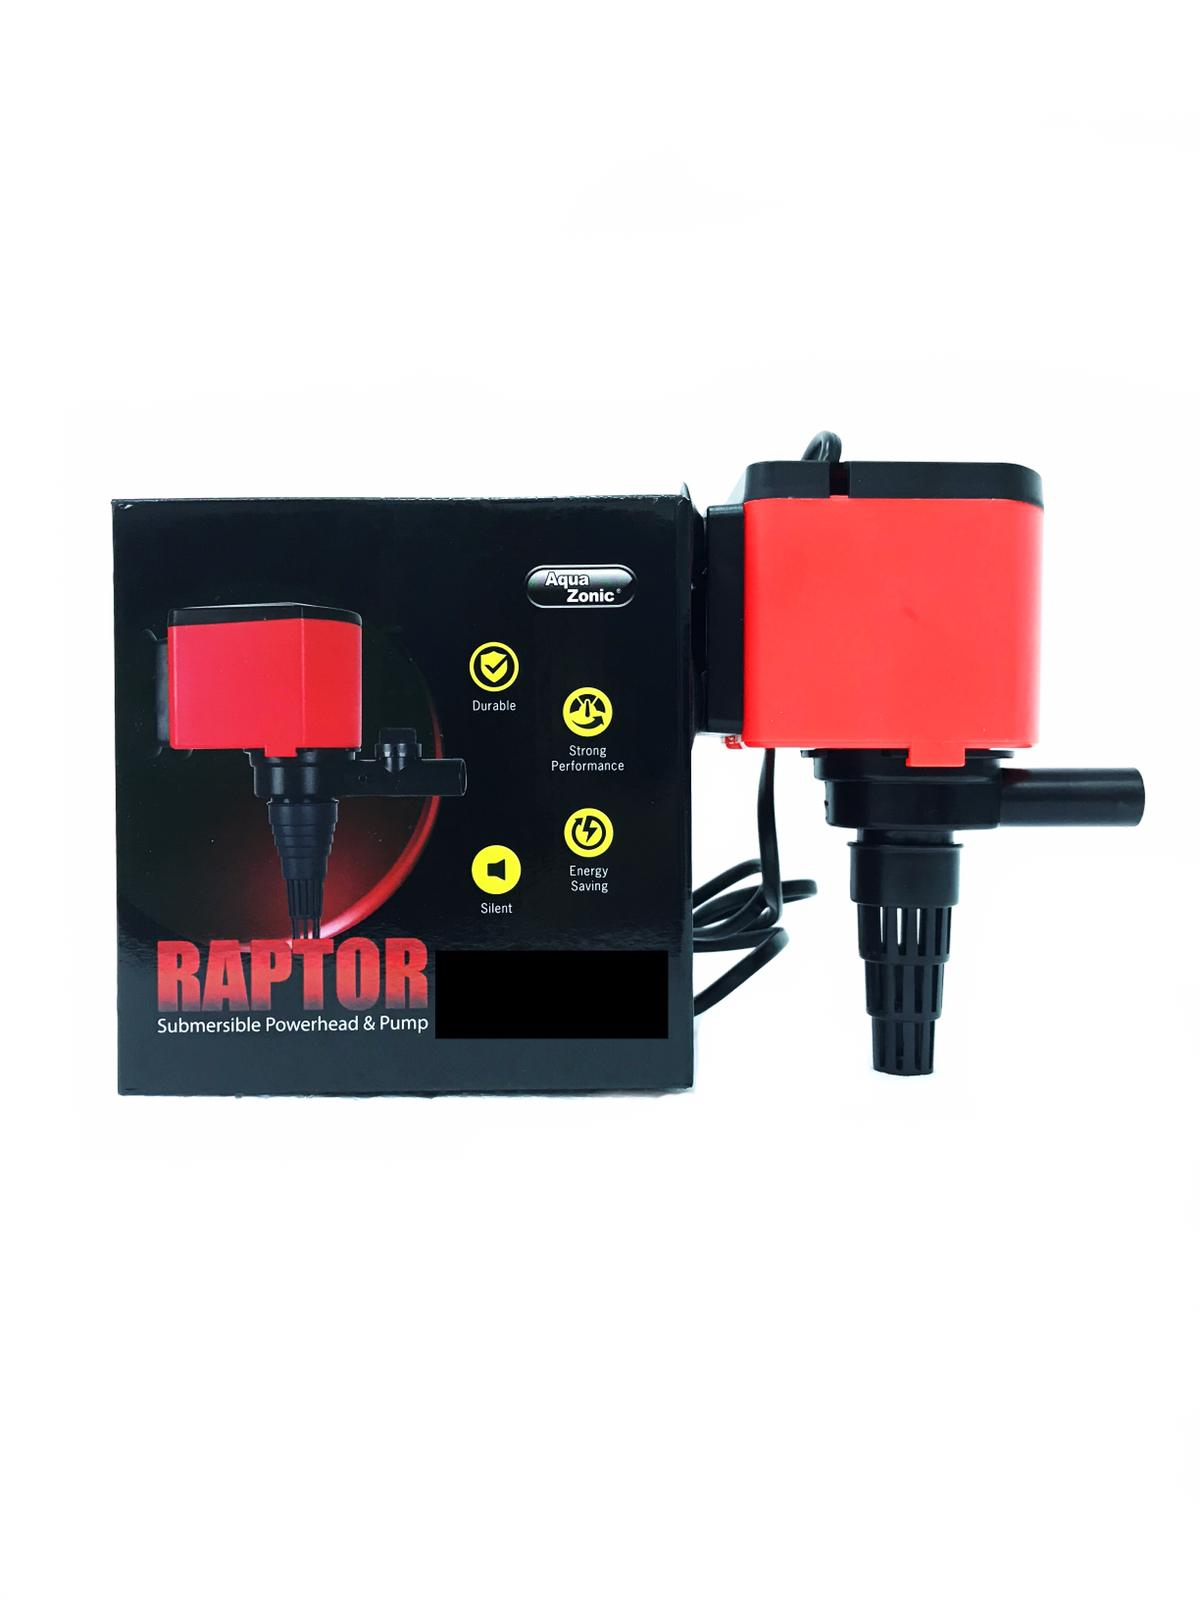 Aqua Zonic Raptor Submersible Powerhead Pump